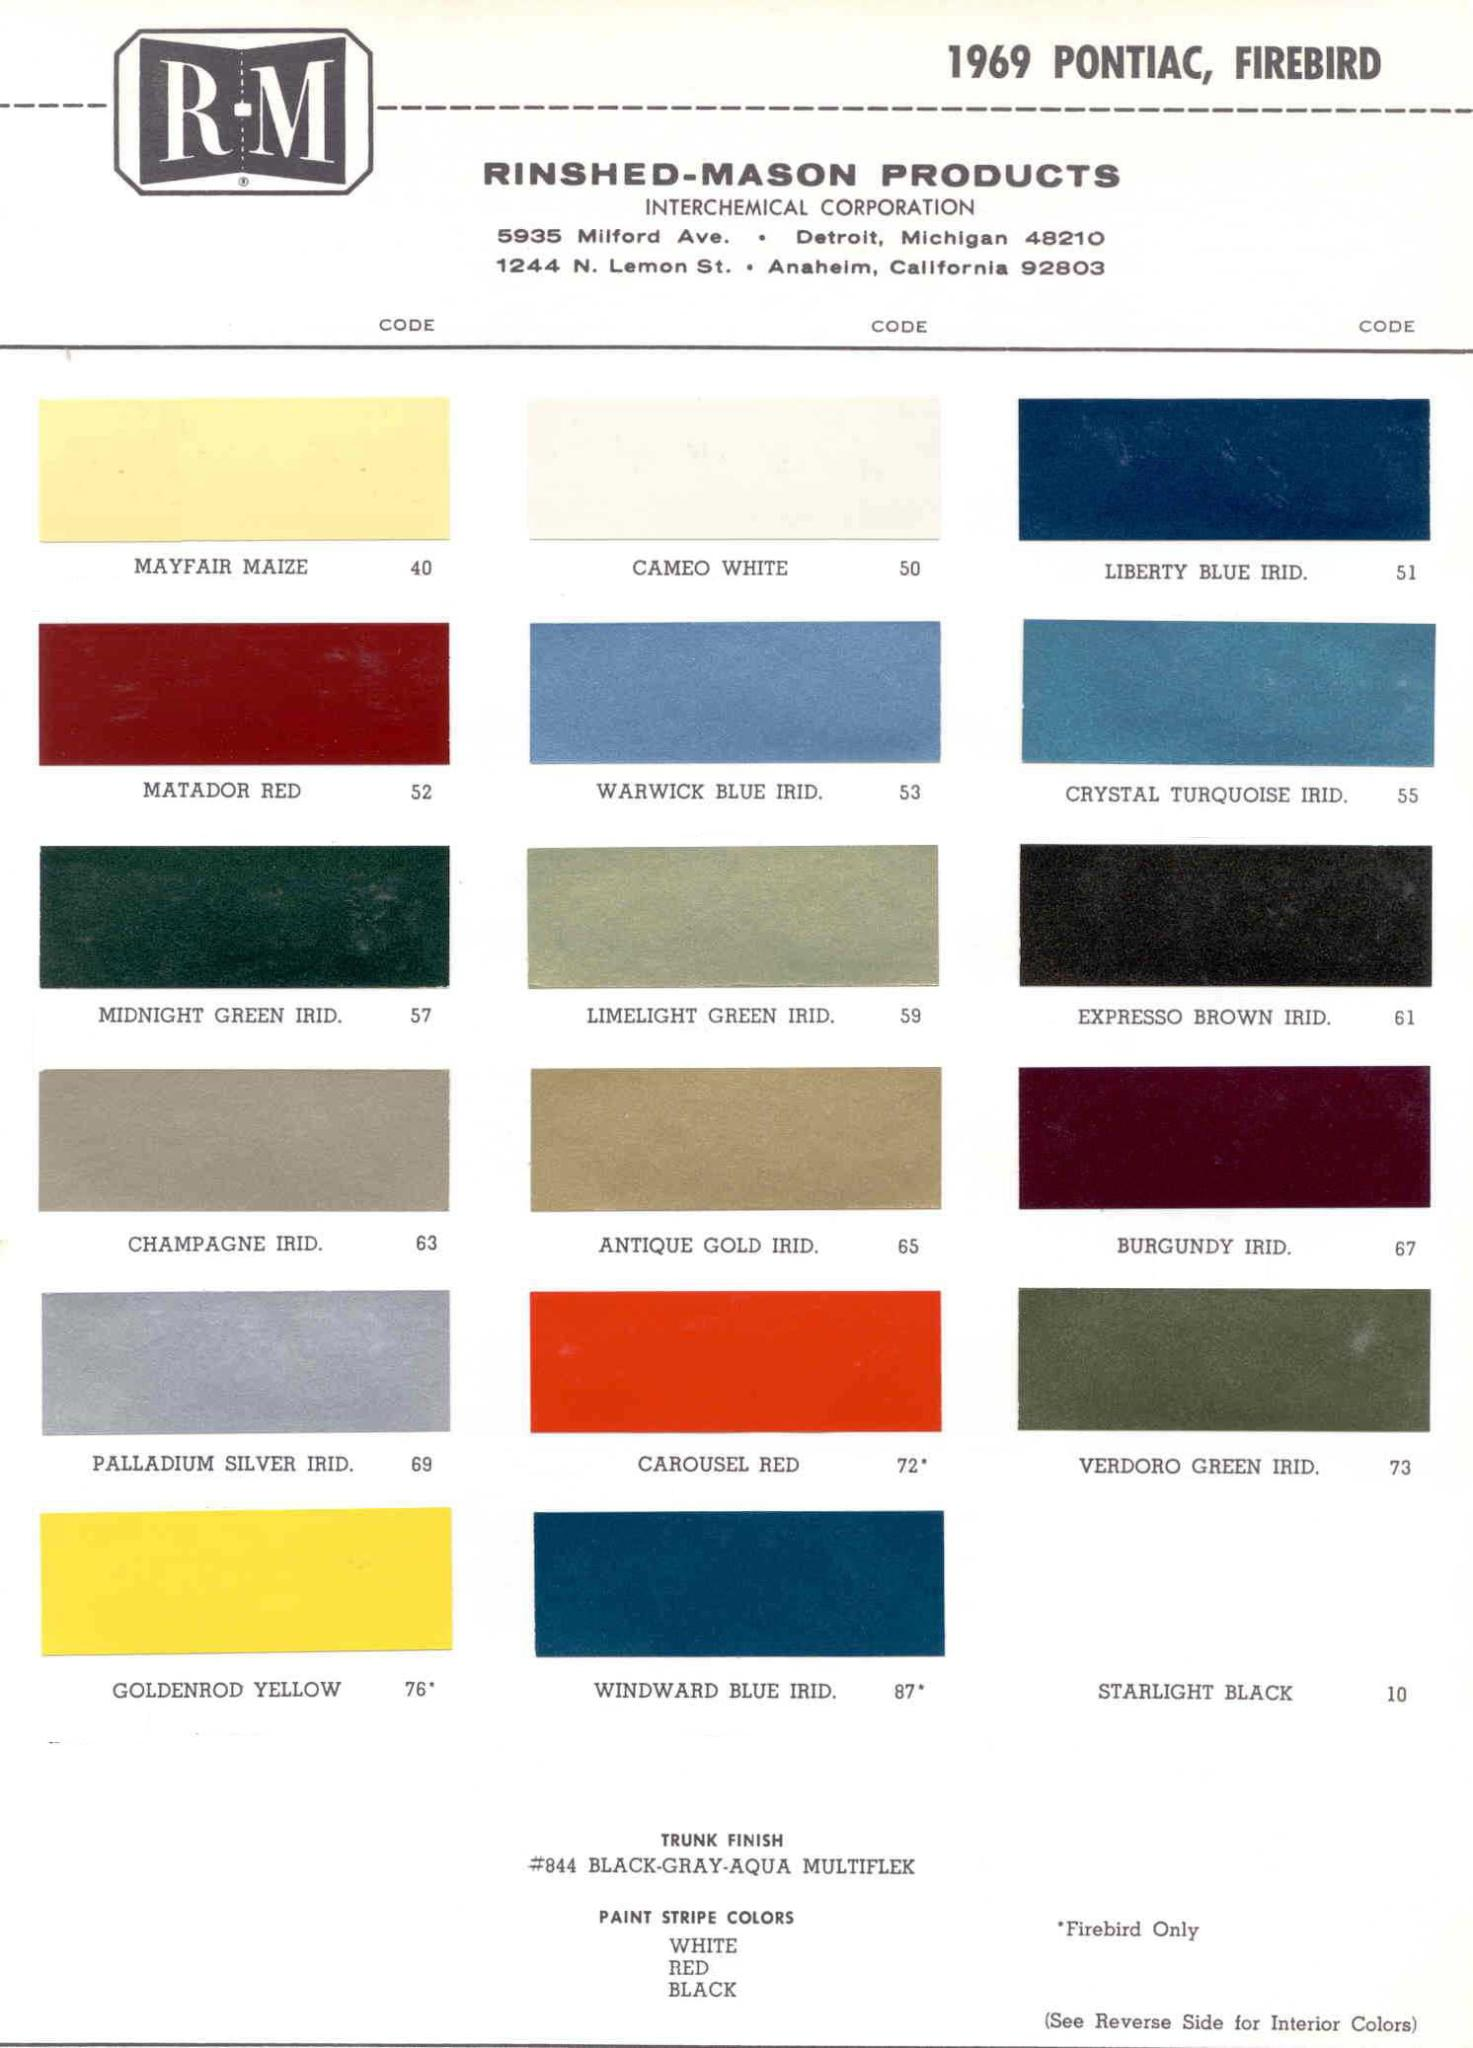 Color Code and Paint Color Chart for Pontiac in 1969